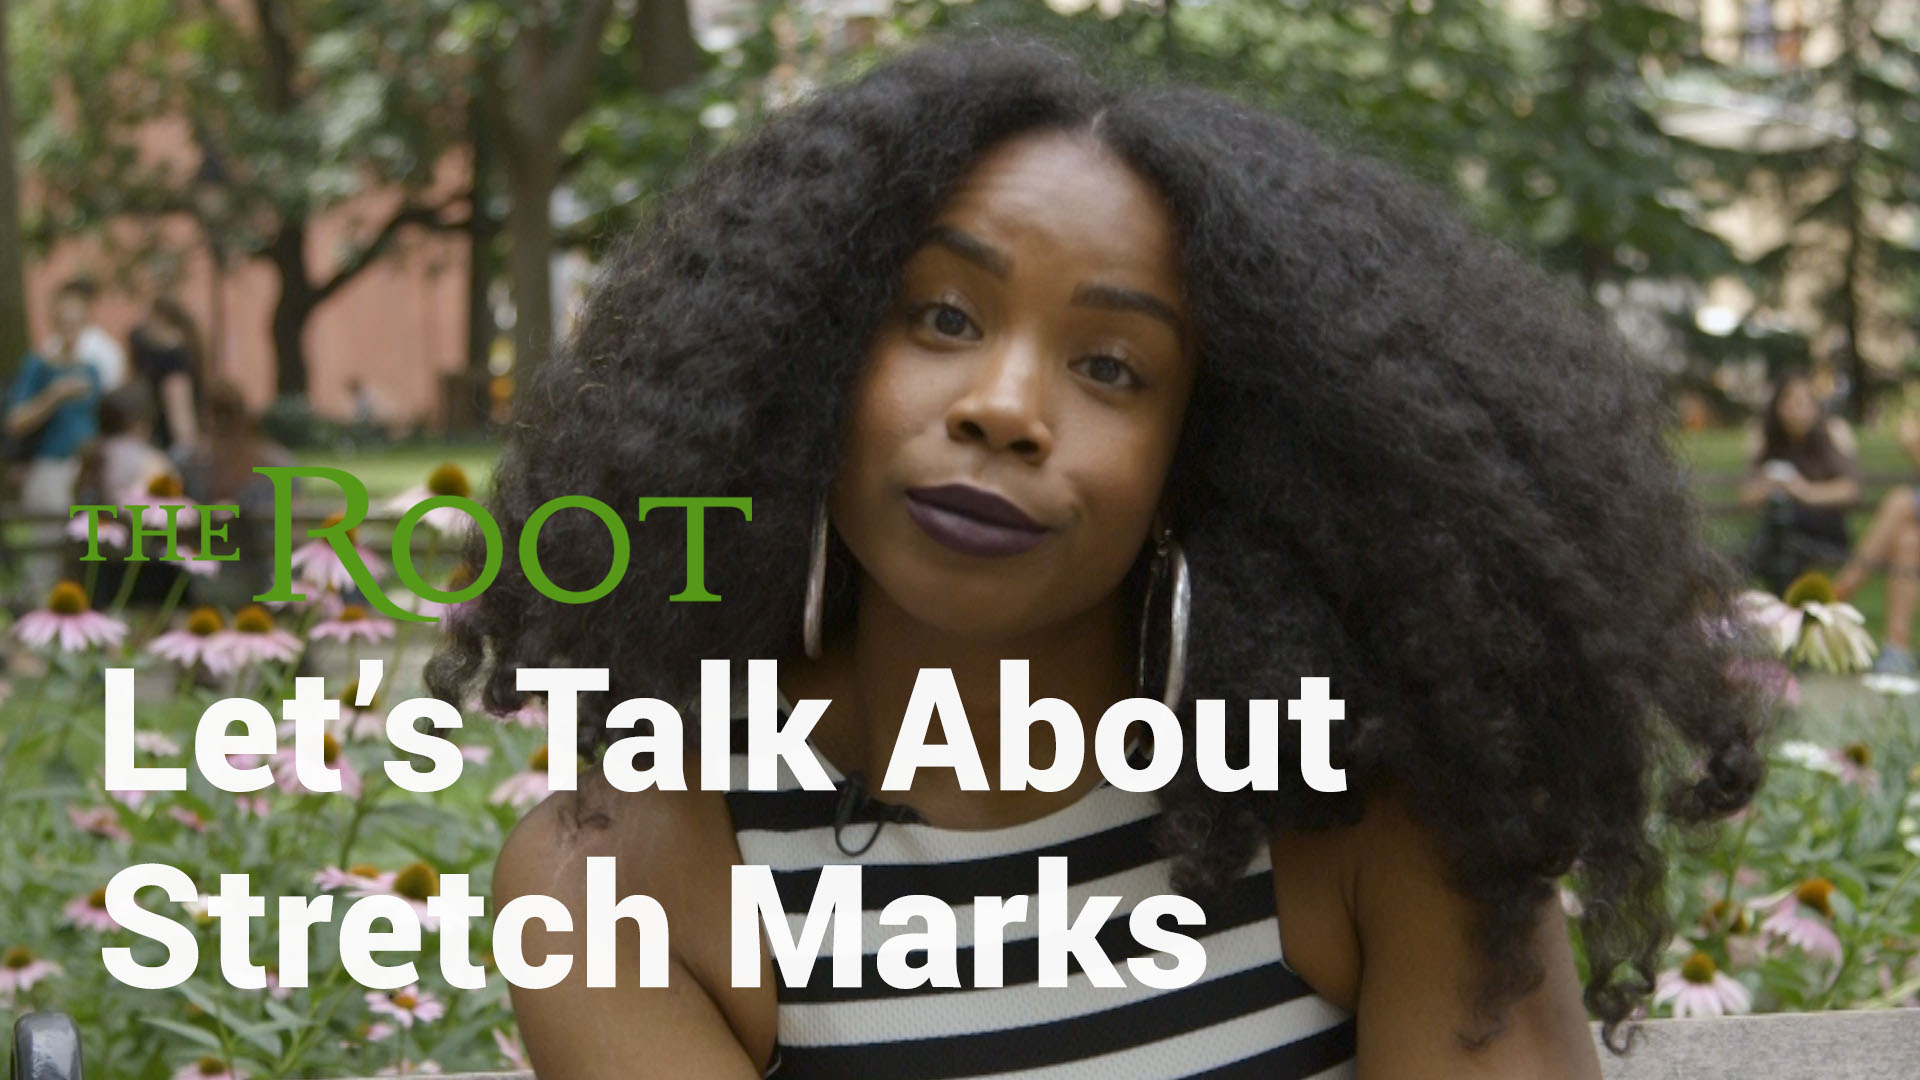 Let's Talk About Stretch Marks